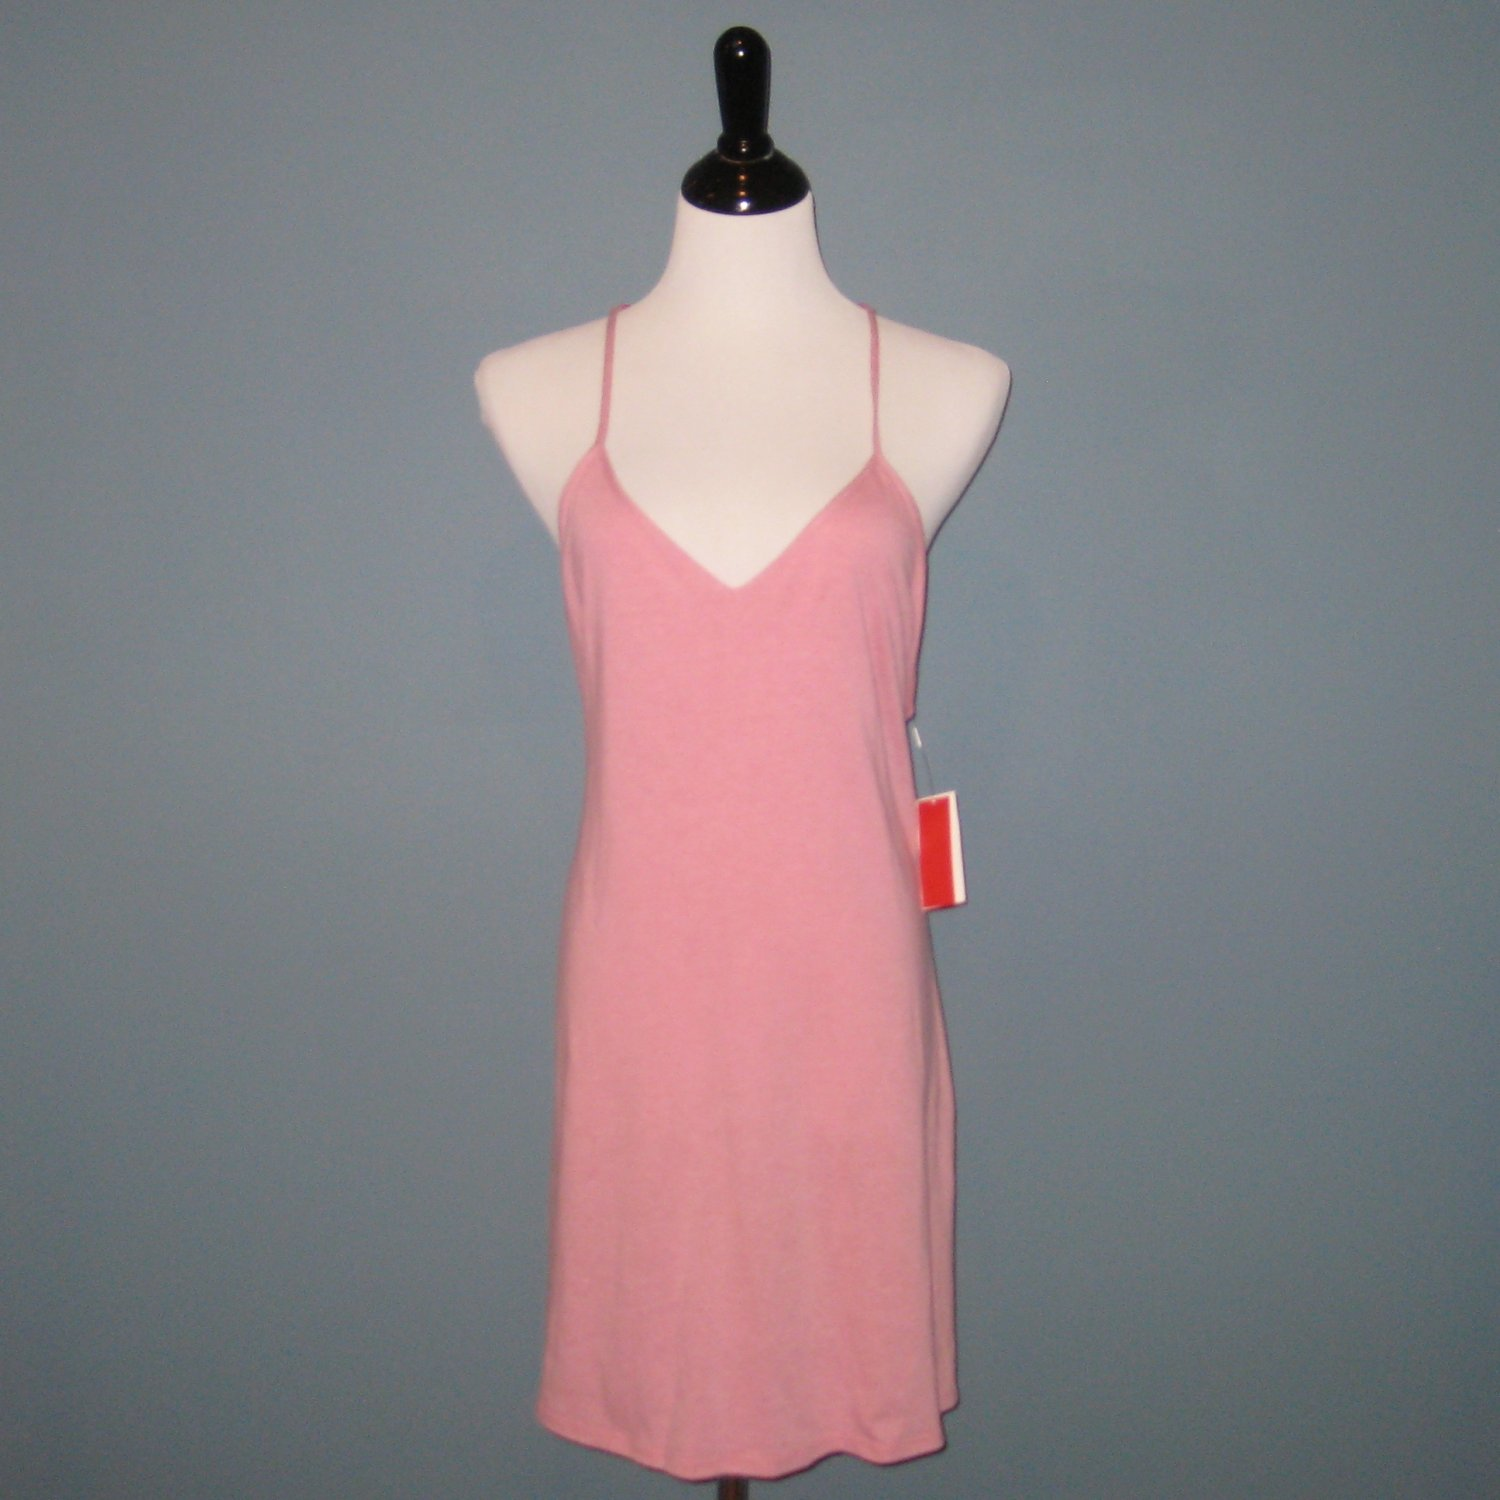 NWT Josie Easy Breezy Cotton Blend Lace T-Back Pink Chemise - L